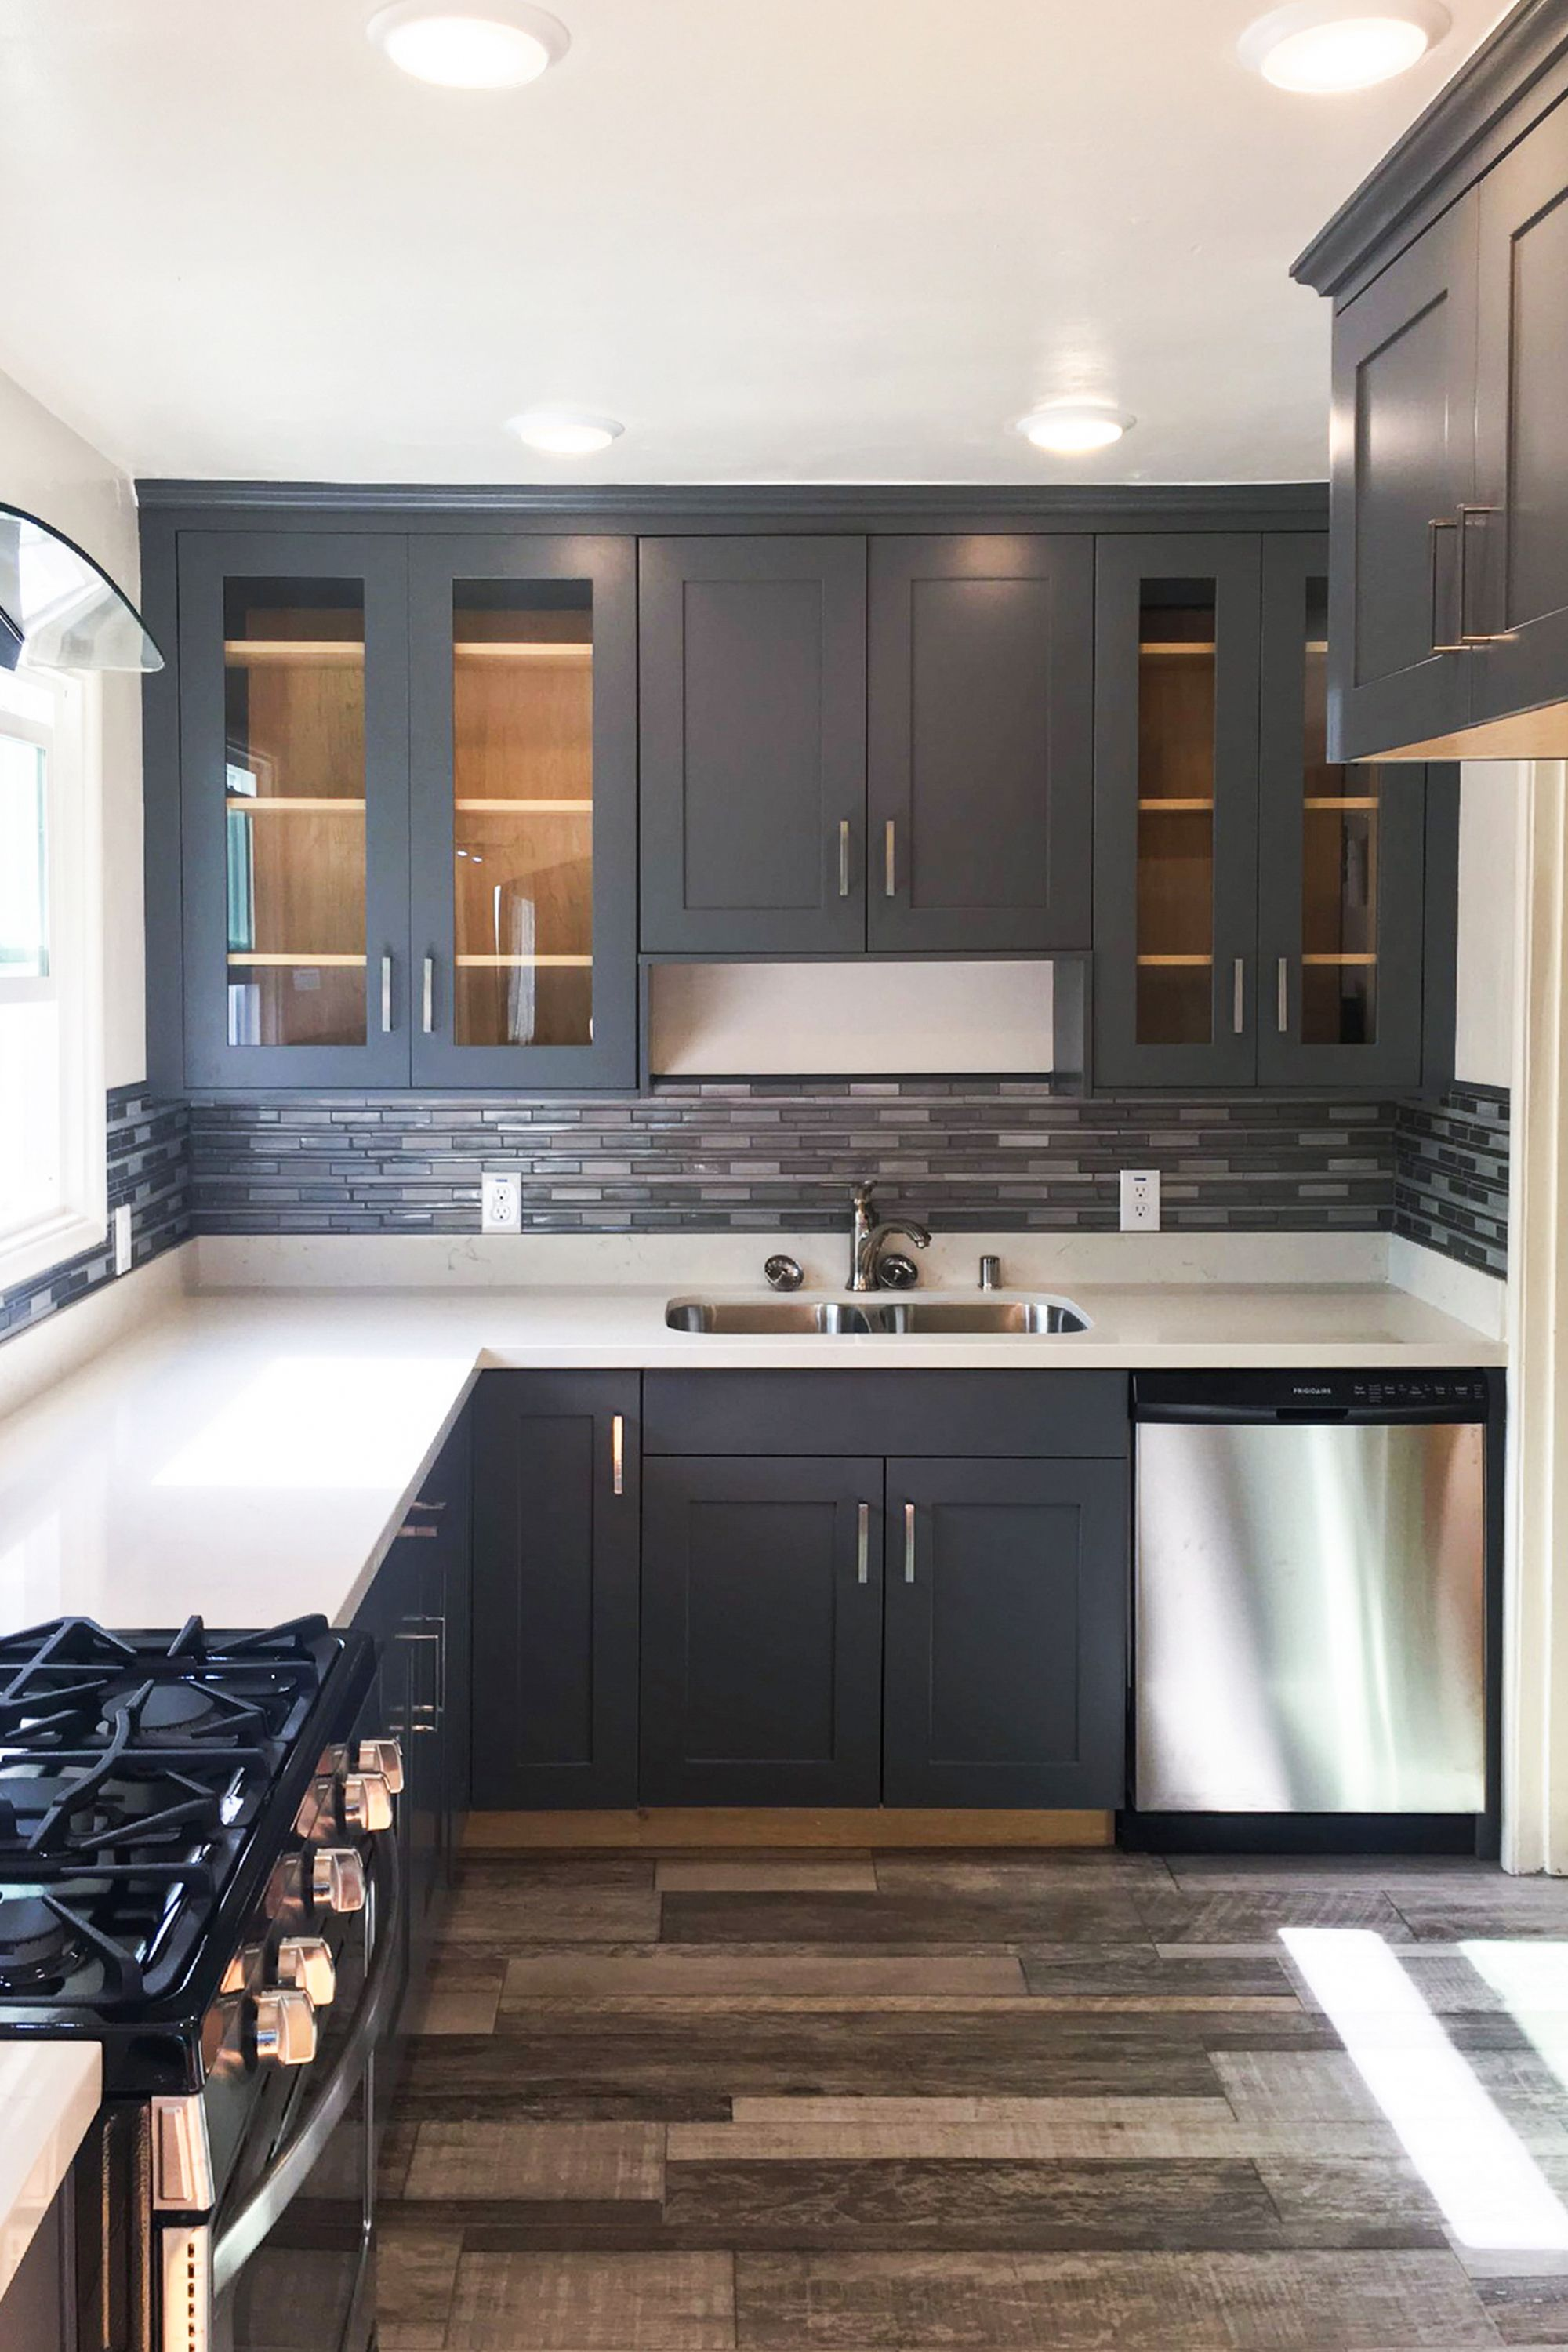 Quick And Easy Way To Refresh Your Kitchen While Working With A Budget Renovate Your Kitchen In Just T Kitchen Design White Kitchen Design Small Kitchen Decor